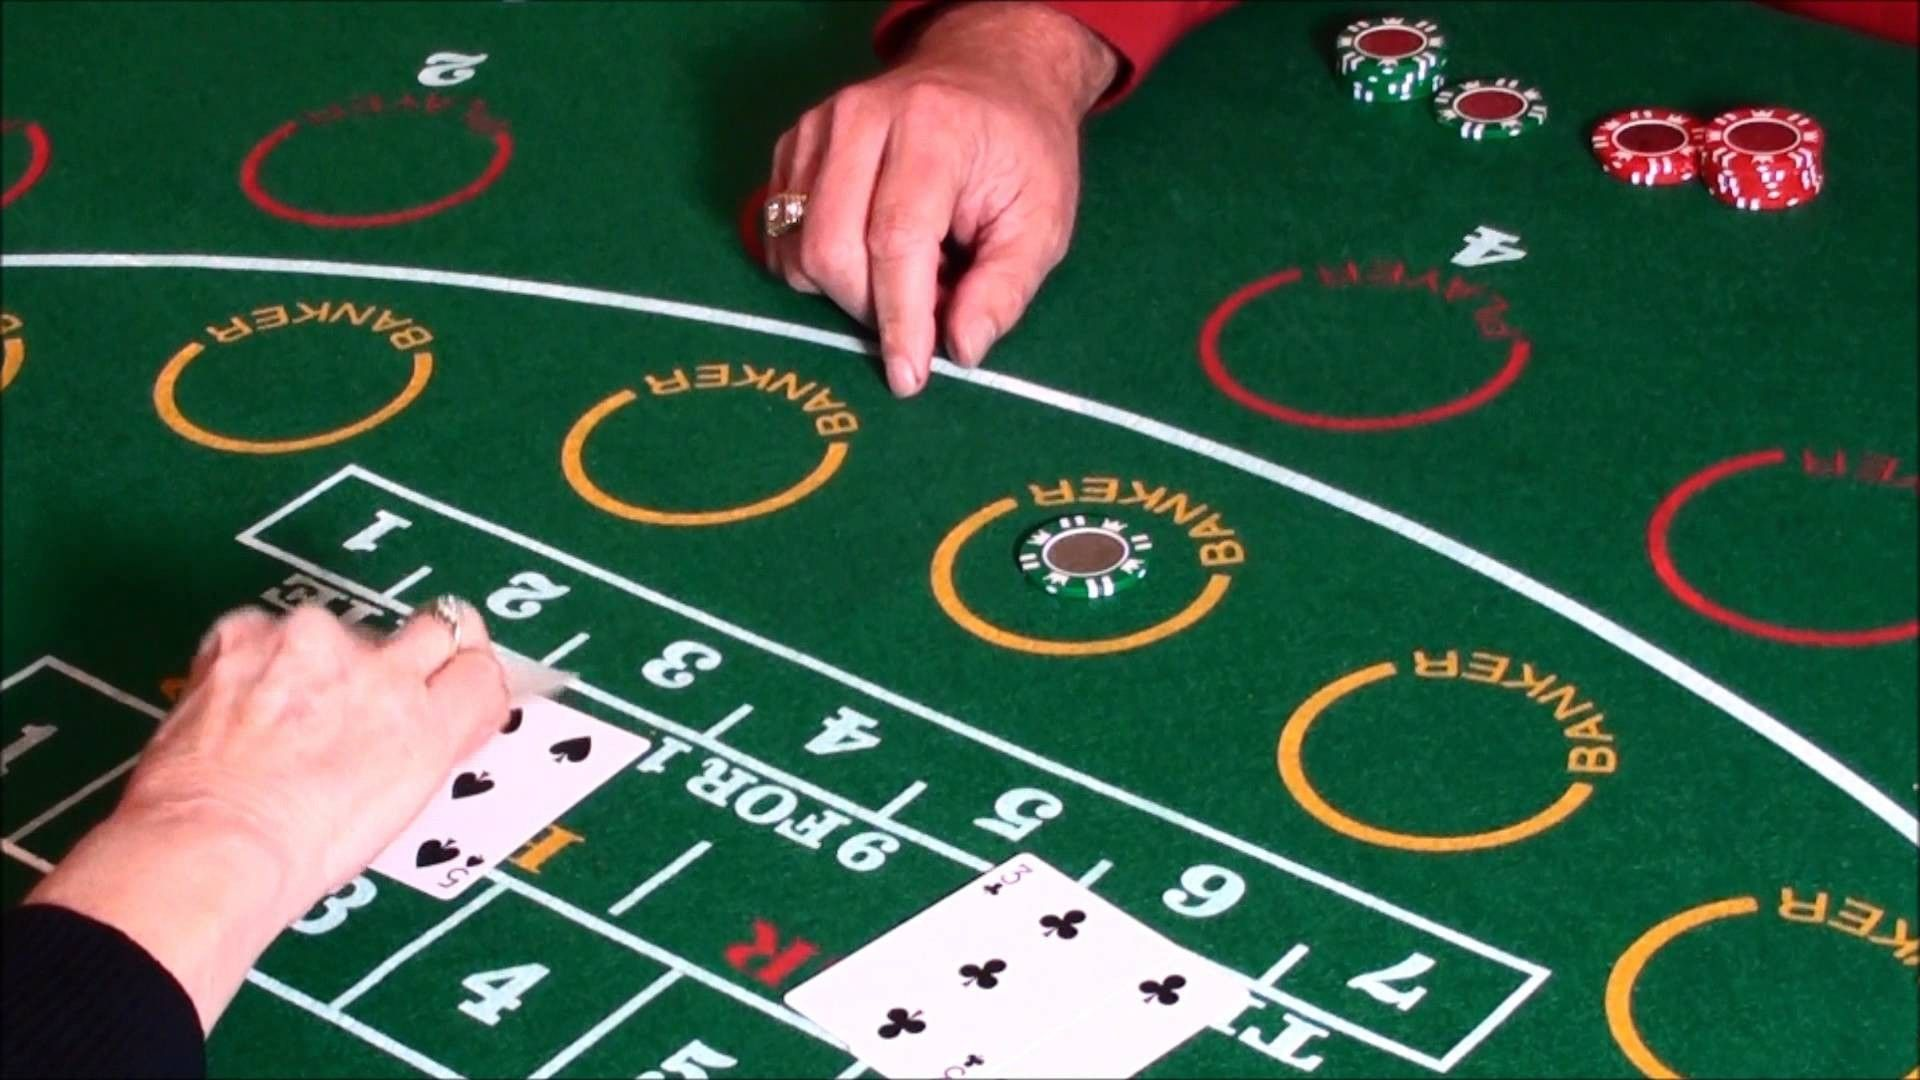 Most players in poker are overall losers